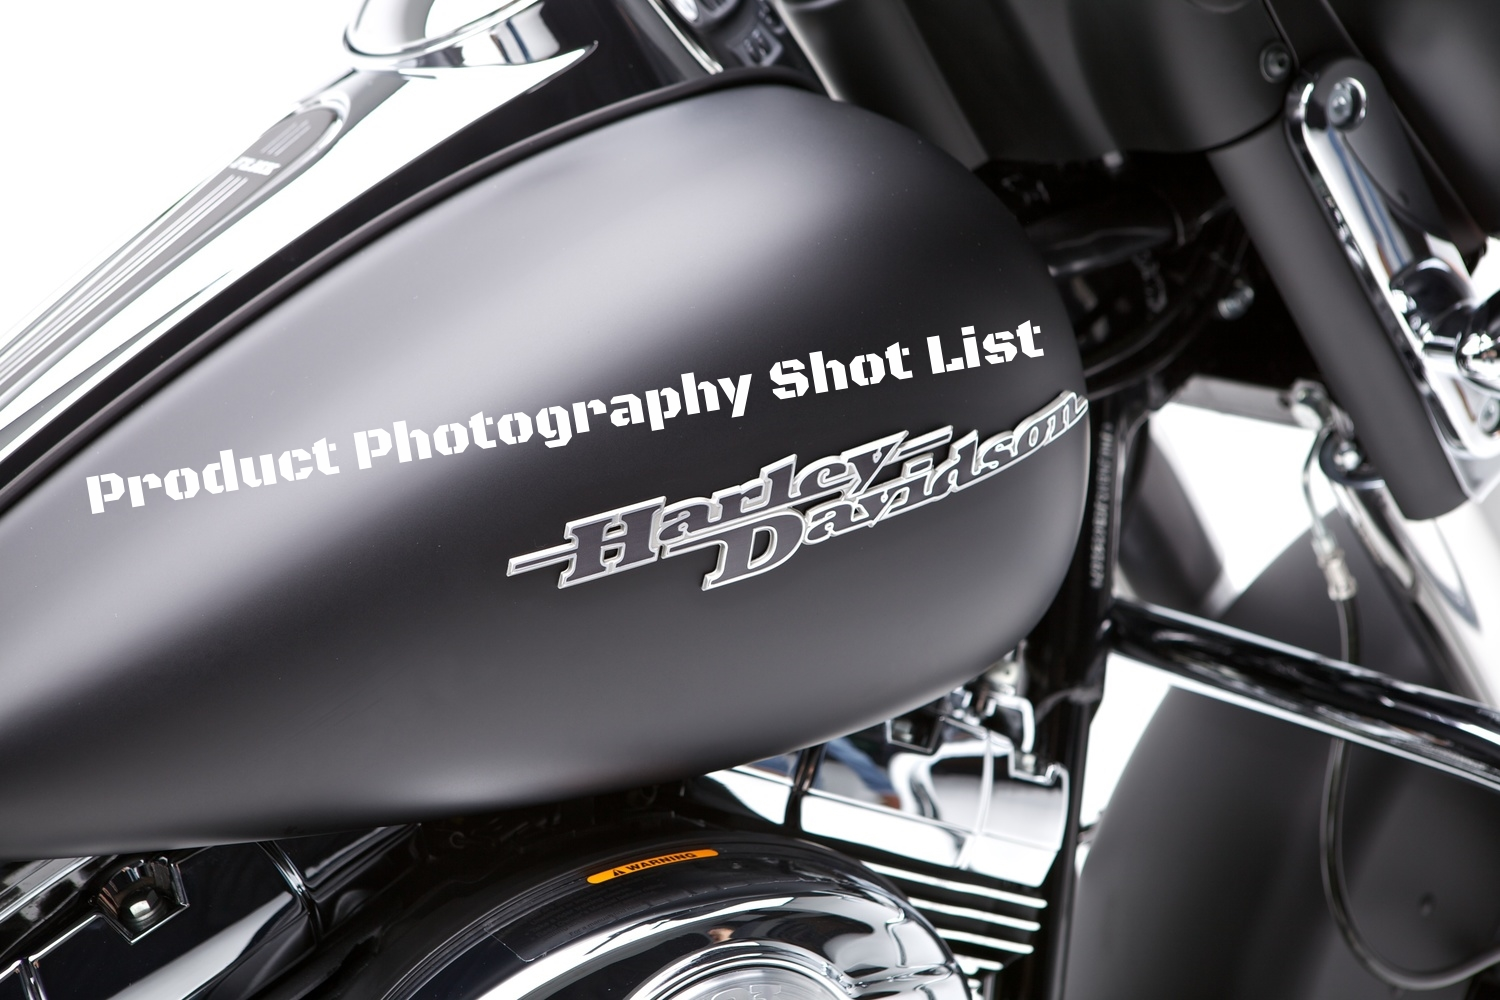 Product Photography Harley